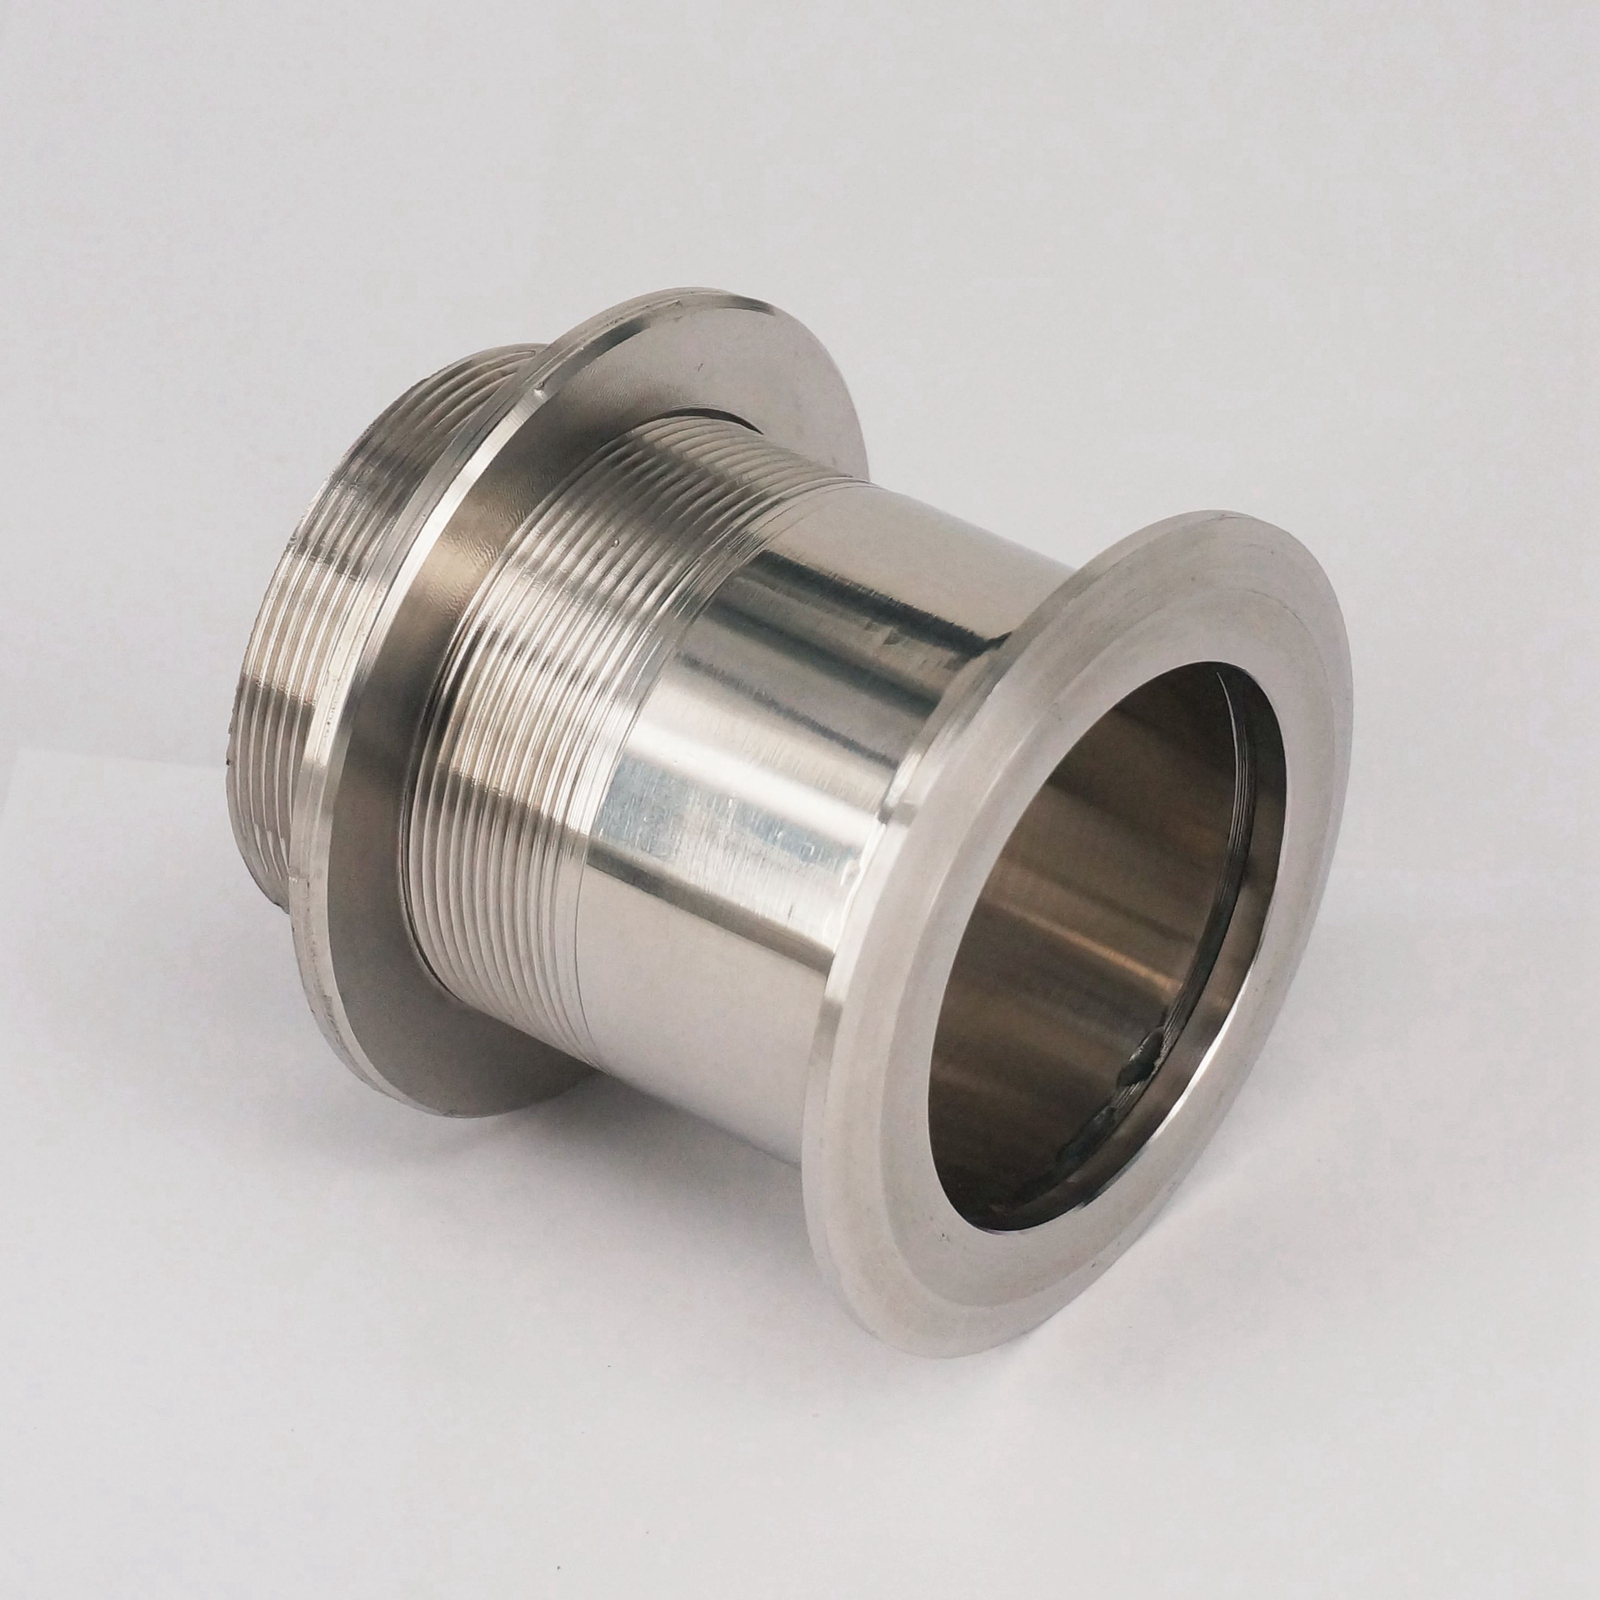 Fit Tube O/D 51mm 304 Stainless Steel Sanitary Bulkhead Pipe Fitting for tube 102mm tube o d x 106mm ferrule o d 304 stainless steel sanitary weld ferrule connector pipe fitting